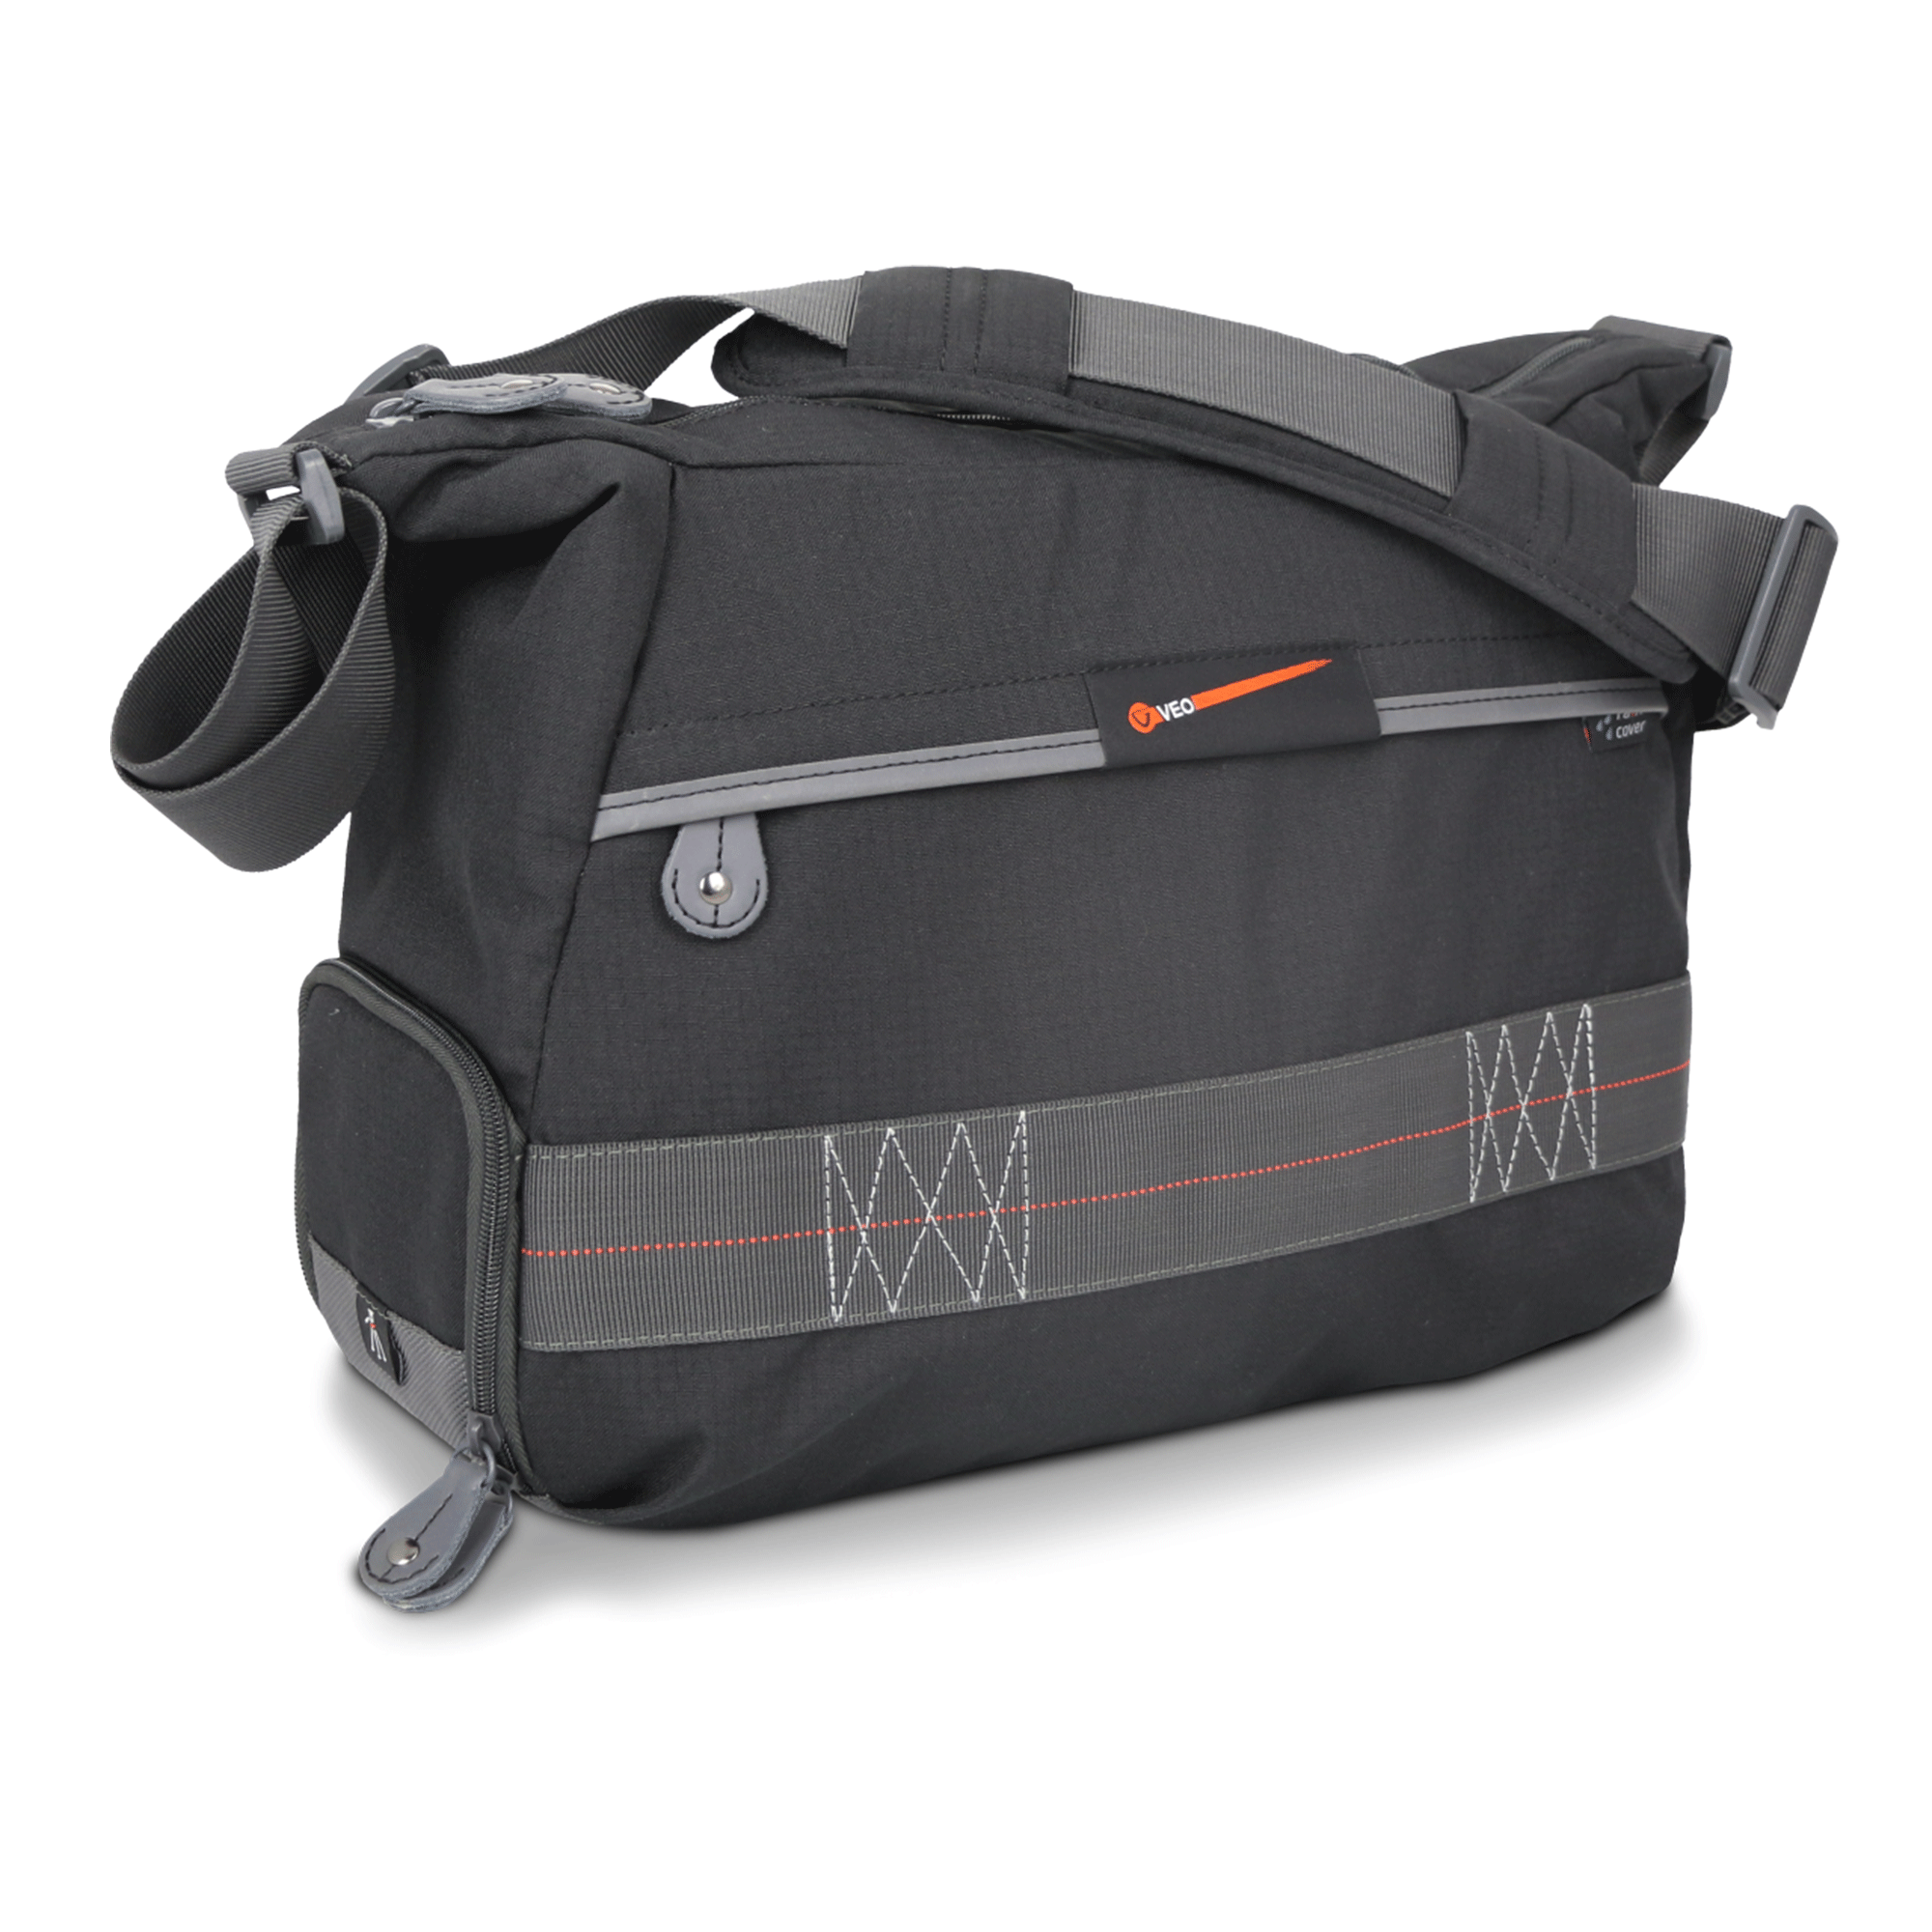 Vanguard VEO 37 Bag